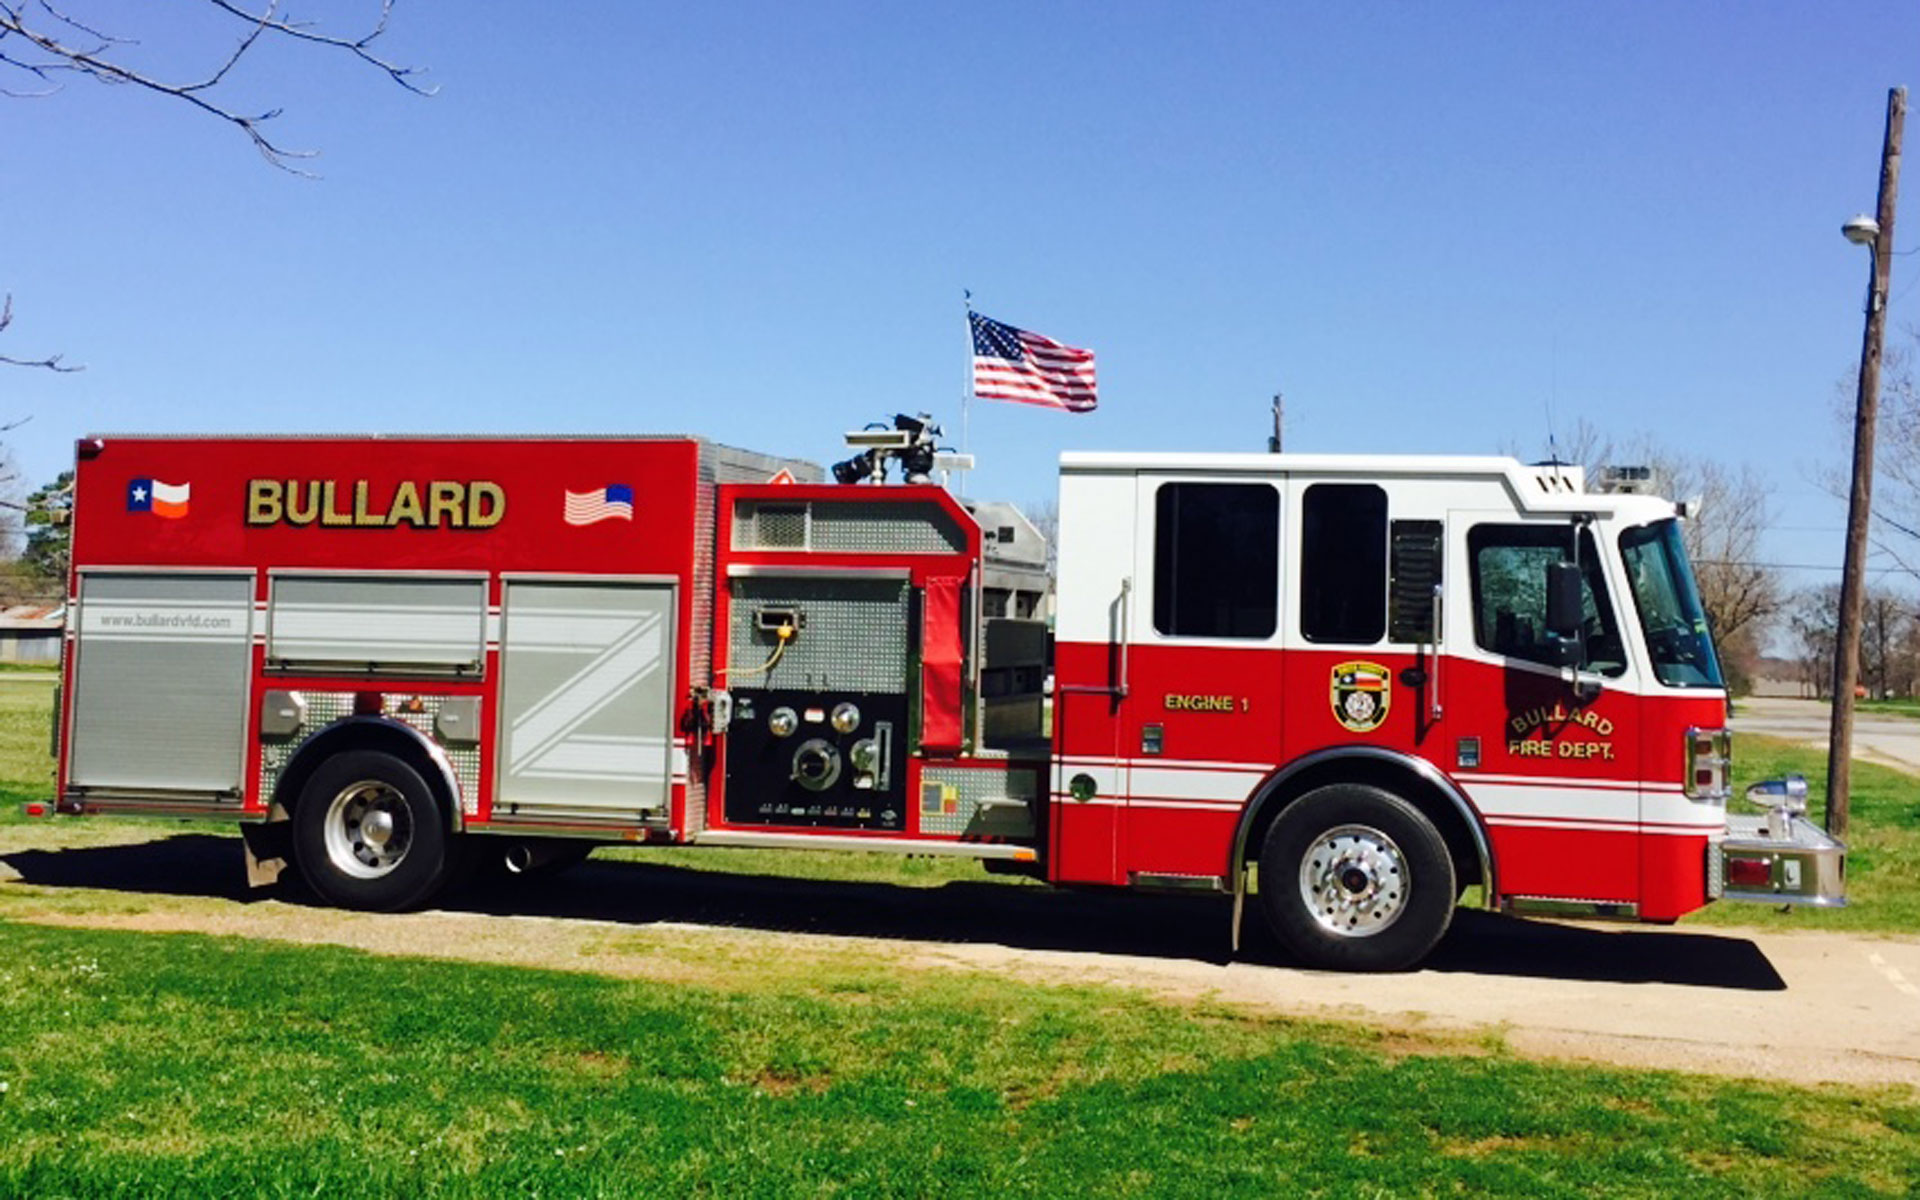 Bullard Fire Department